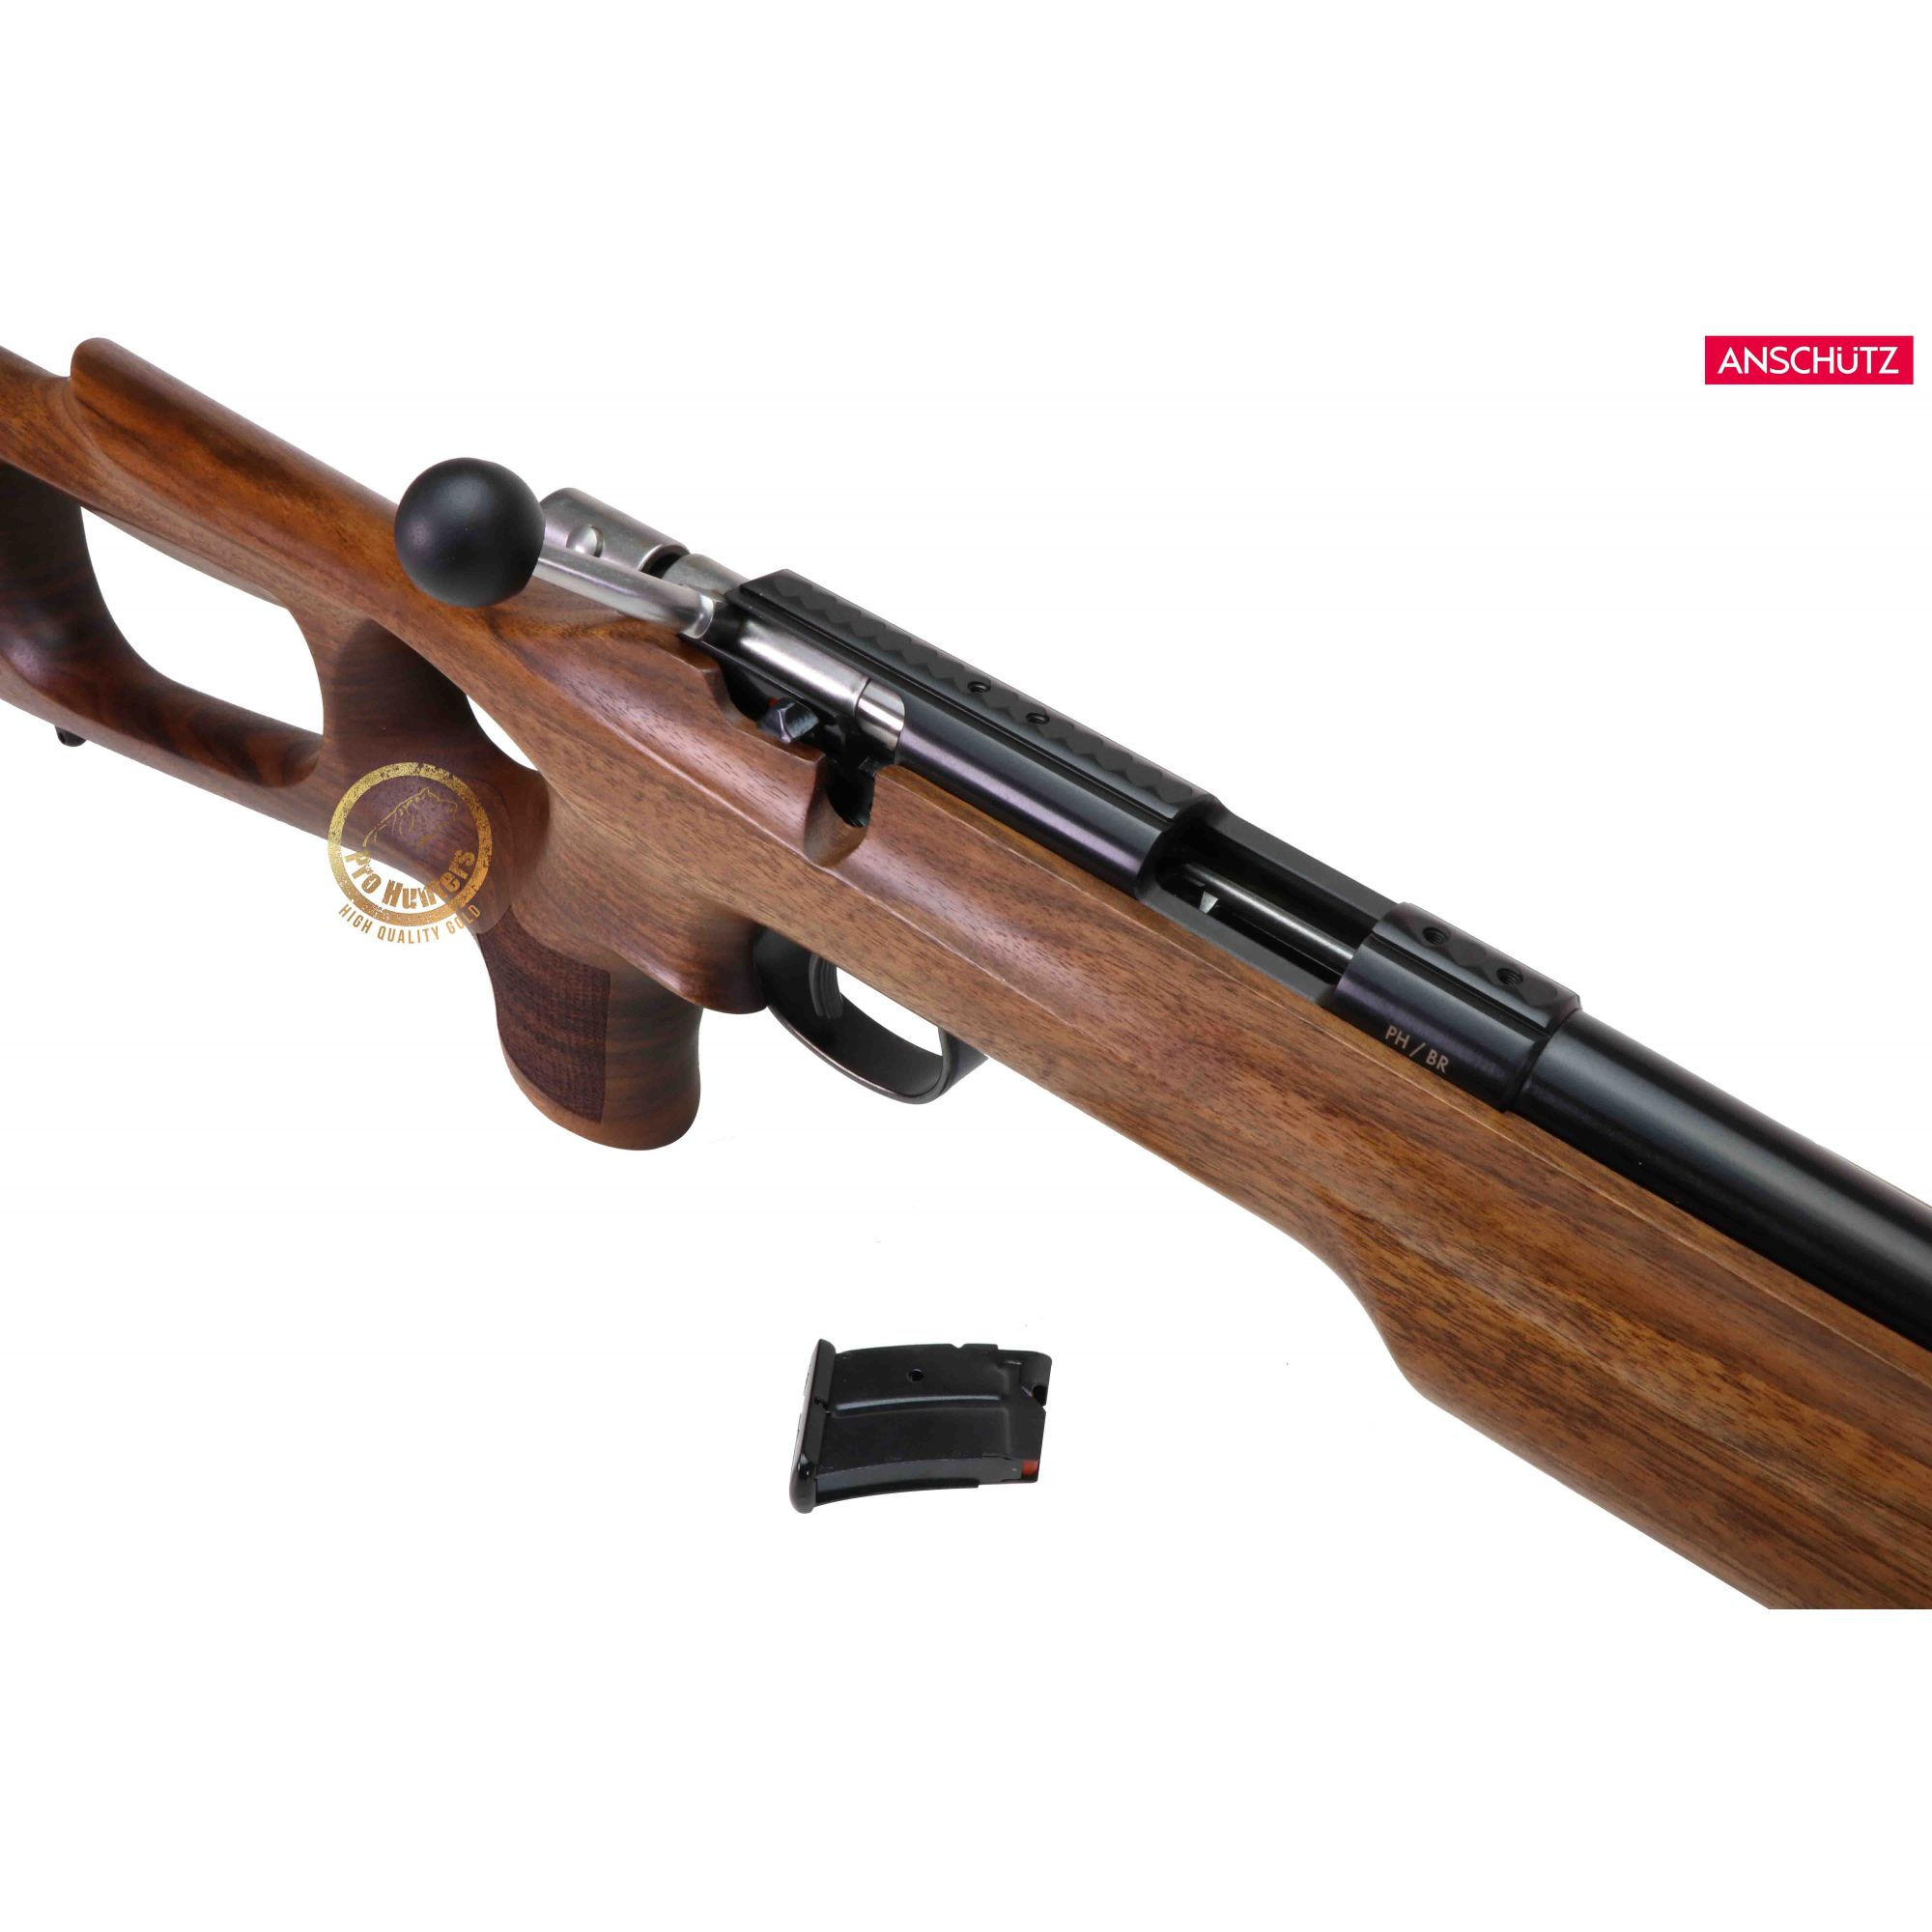 Anschutz - 1416 D HB Thumbhole Stock - Calibre .22 LR  - Venda Exclusiva Para CAC